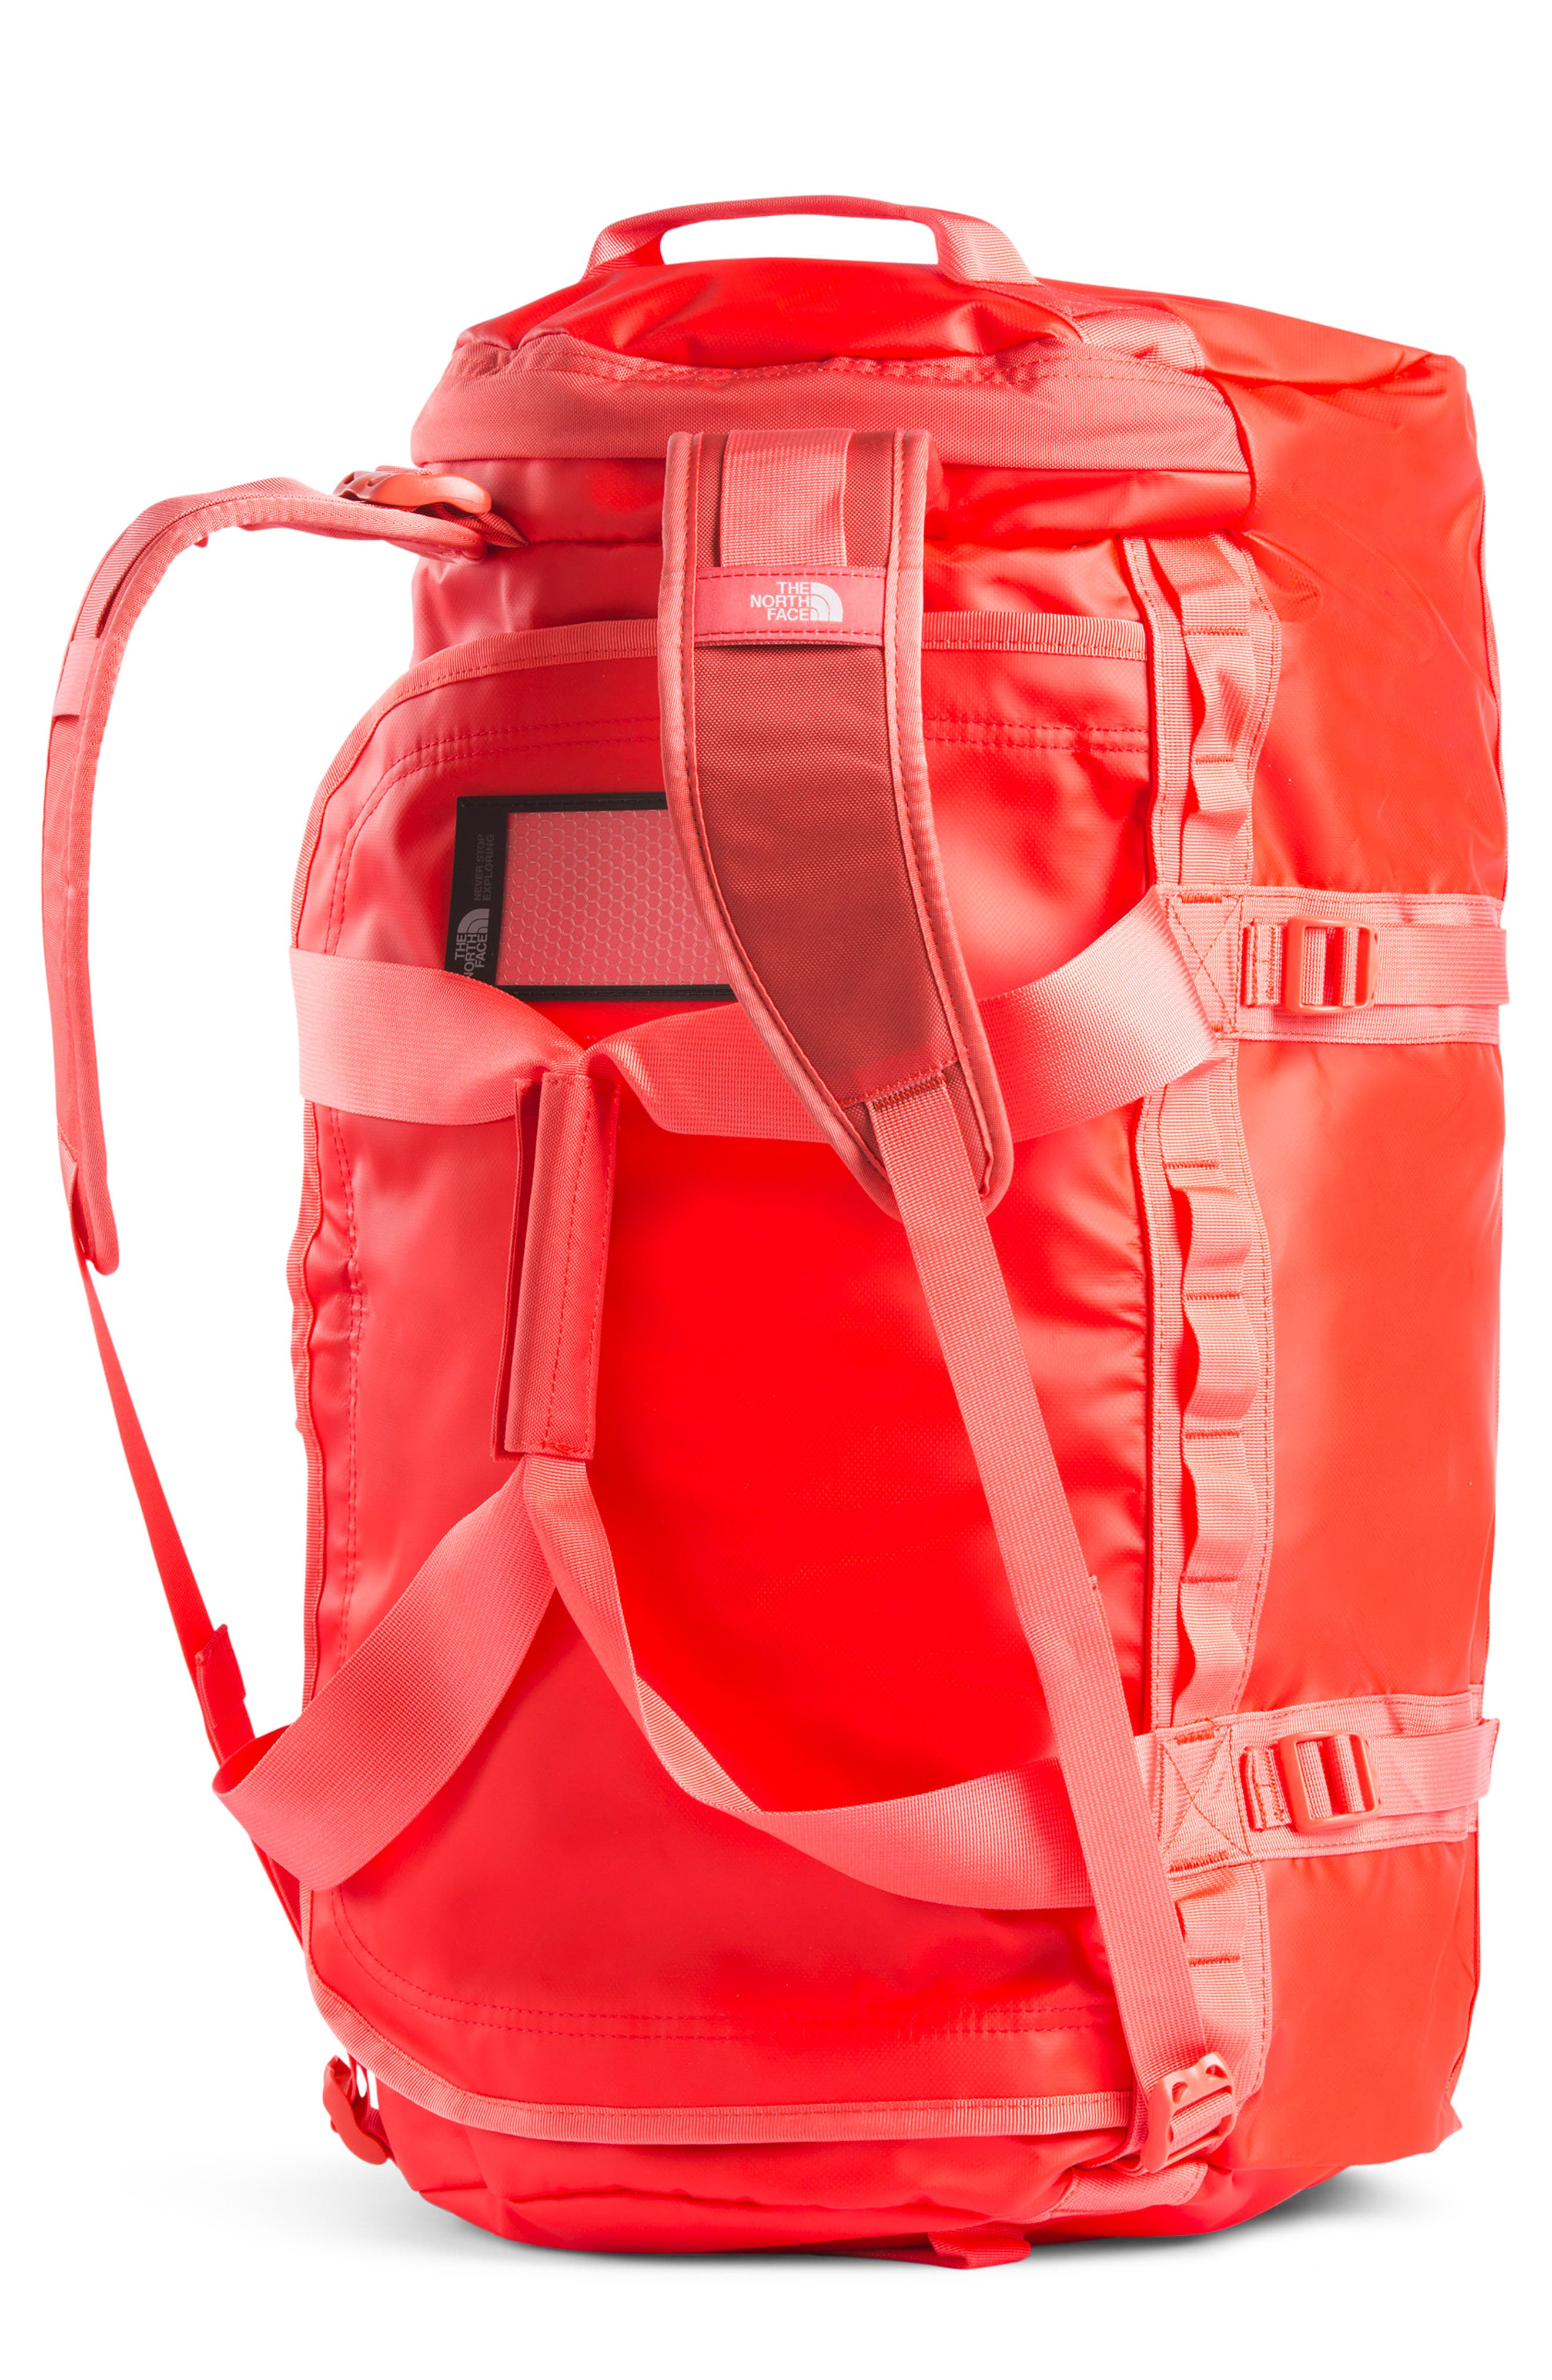 THE NORTH FACE, Base Camp Medium Duffle Bag, Main thumbnail 1, color, JUICY RED/ SPICED CORAL